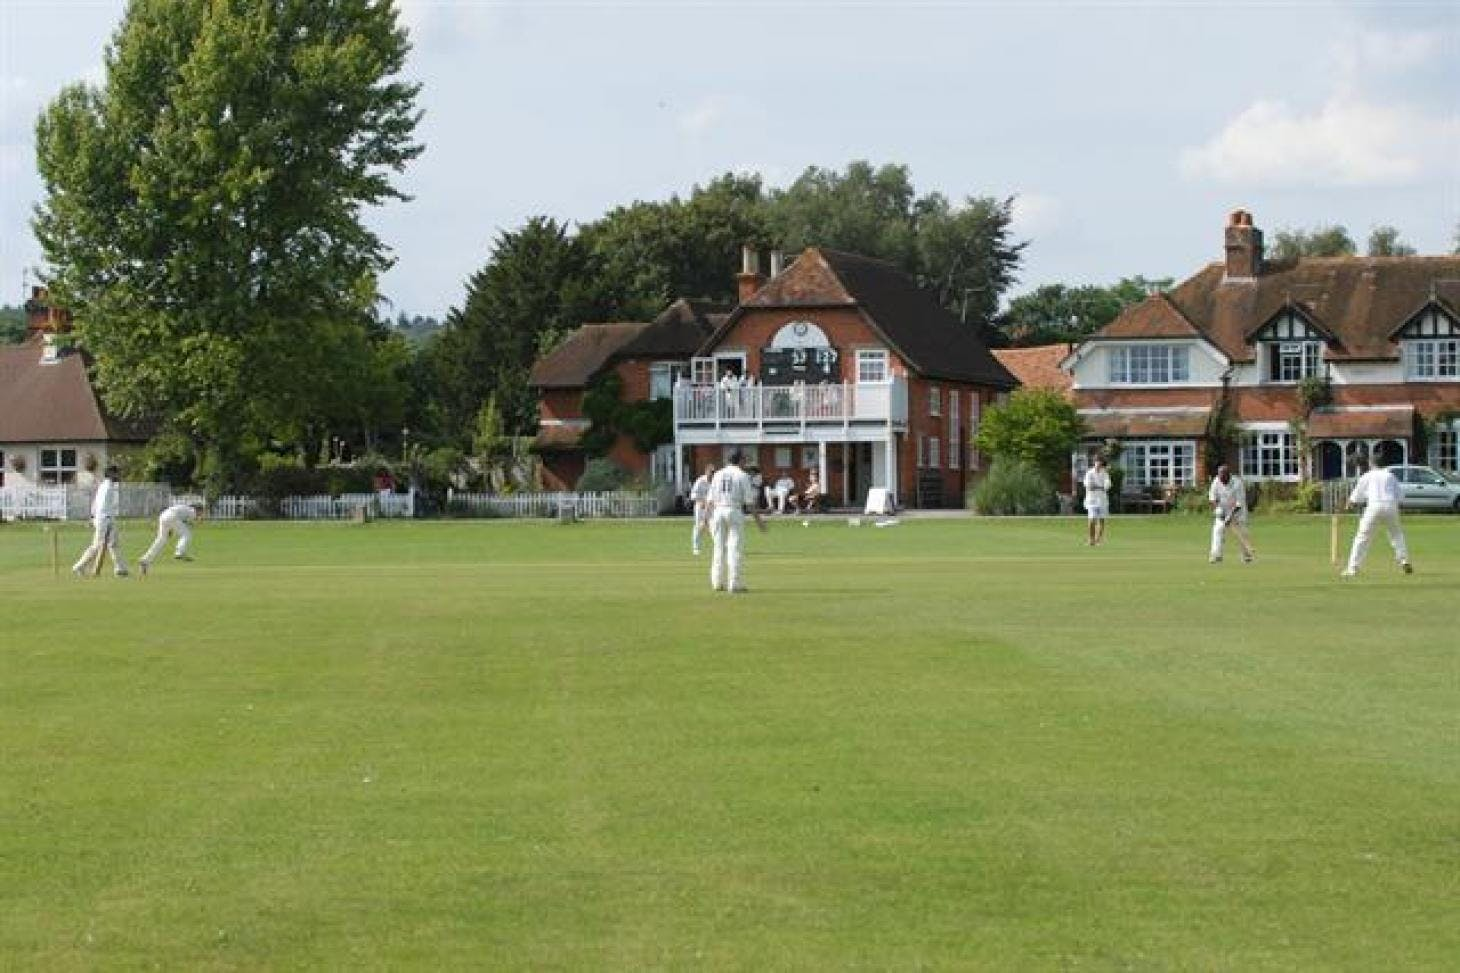 Littlewick Green Cricket Club Full size | Grass cricket facilities